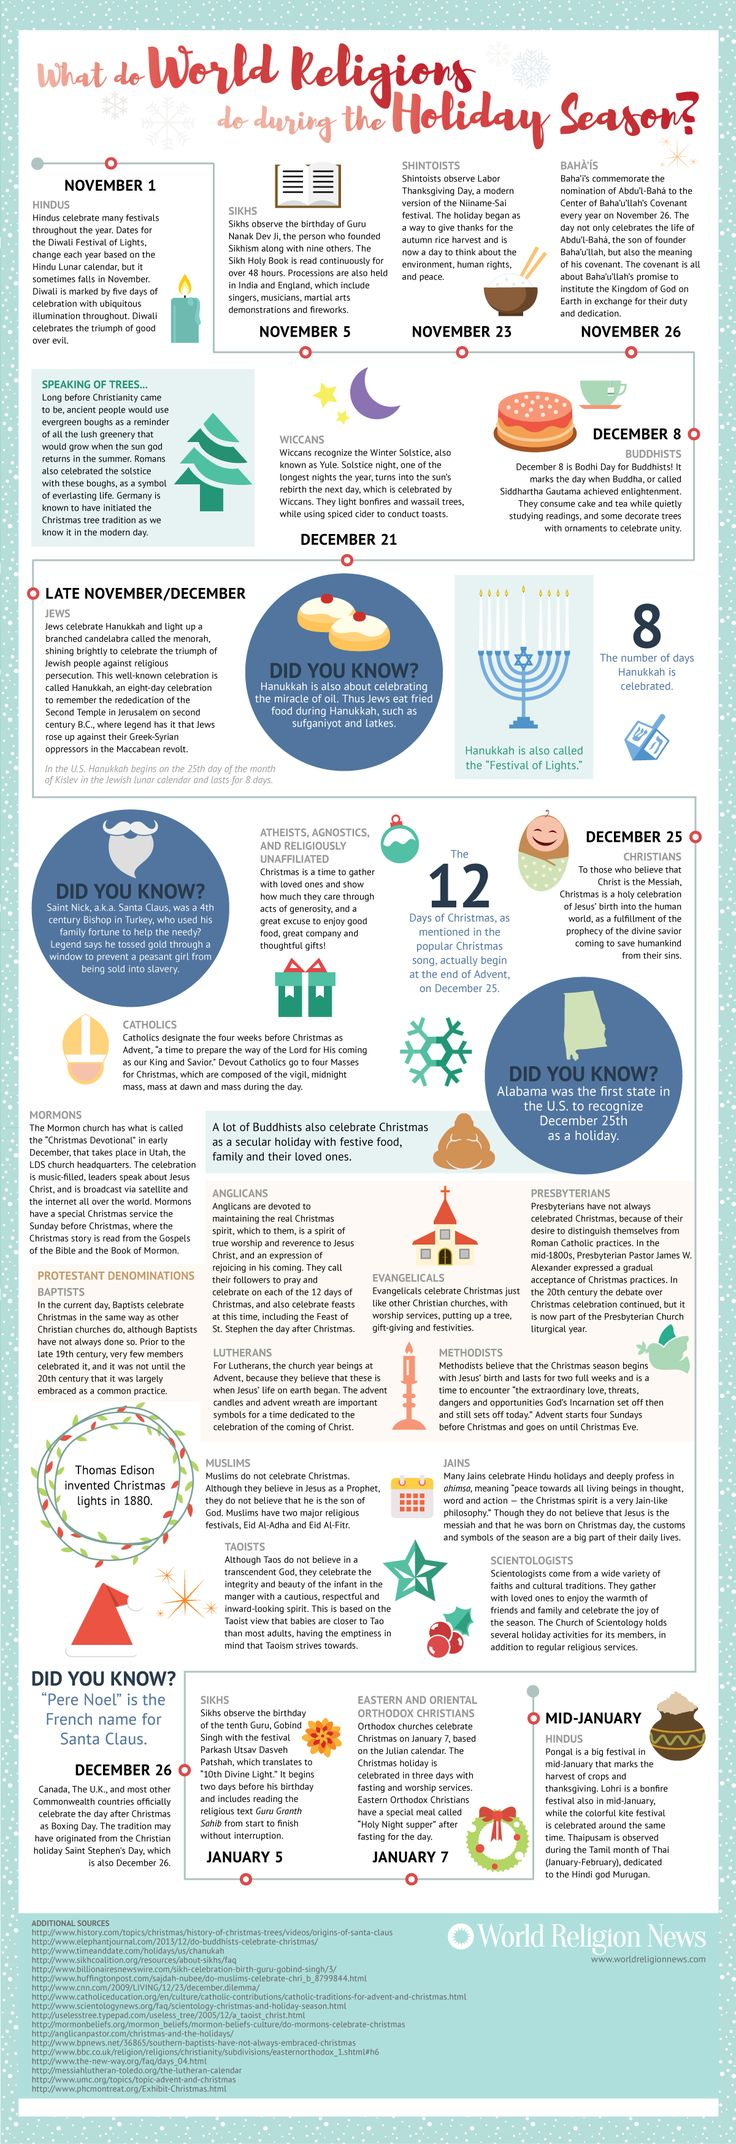 Discover what world religions do during the holiday season in this information-packed infographic, which provides a quick snapshot on the holidays as observed by Hindus; Sikhs; Shintoists;Bahá'ís; Wiccans; Buddhists; Jews; Atheists, Agnostics and religiously unaffiliated; Christians, including Catholics, Mormons, Protestant and Eastern and OrientalOrthodox; Jains; Scientologists; and Taoists. Find the answers to the questions: which religions celebrate Christmas? How many days does…